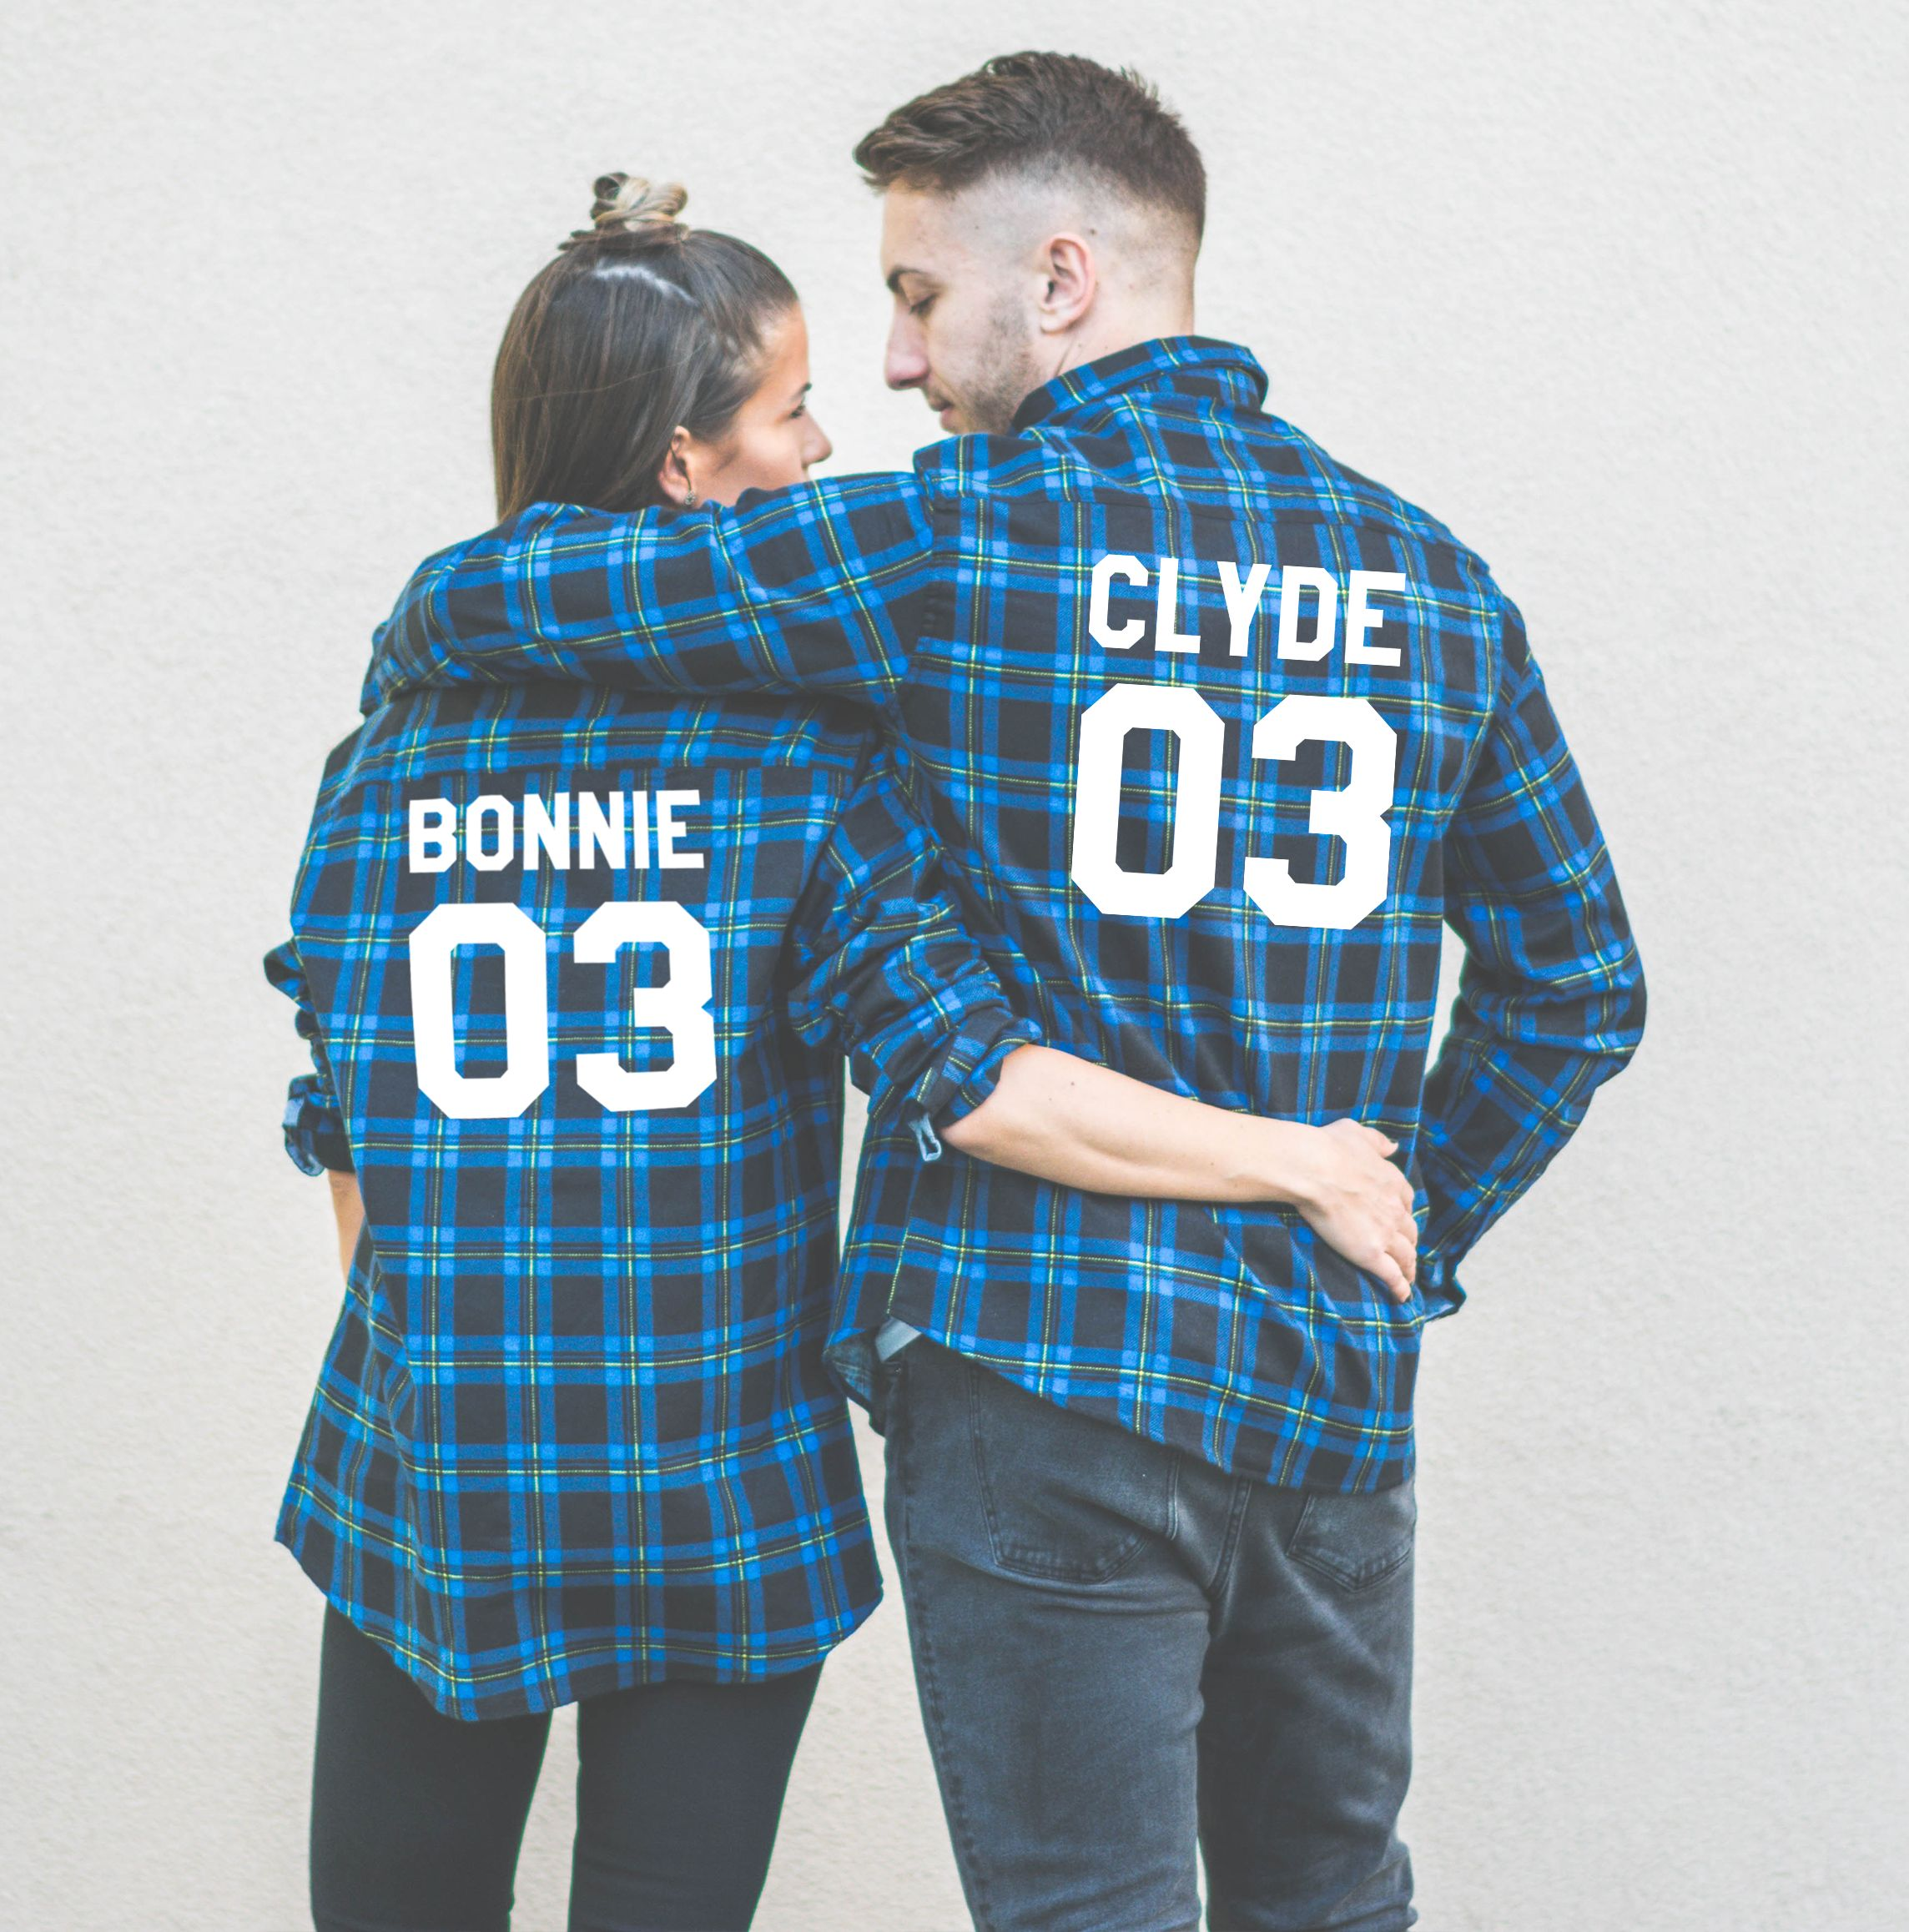 bonnie and clyde matching shirts t shirts design concept. Black Bedroom Furniture Sets. Home Design Ideas